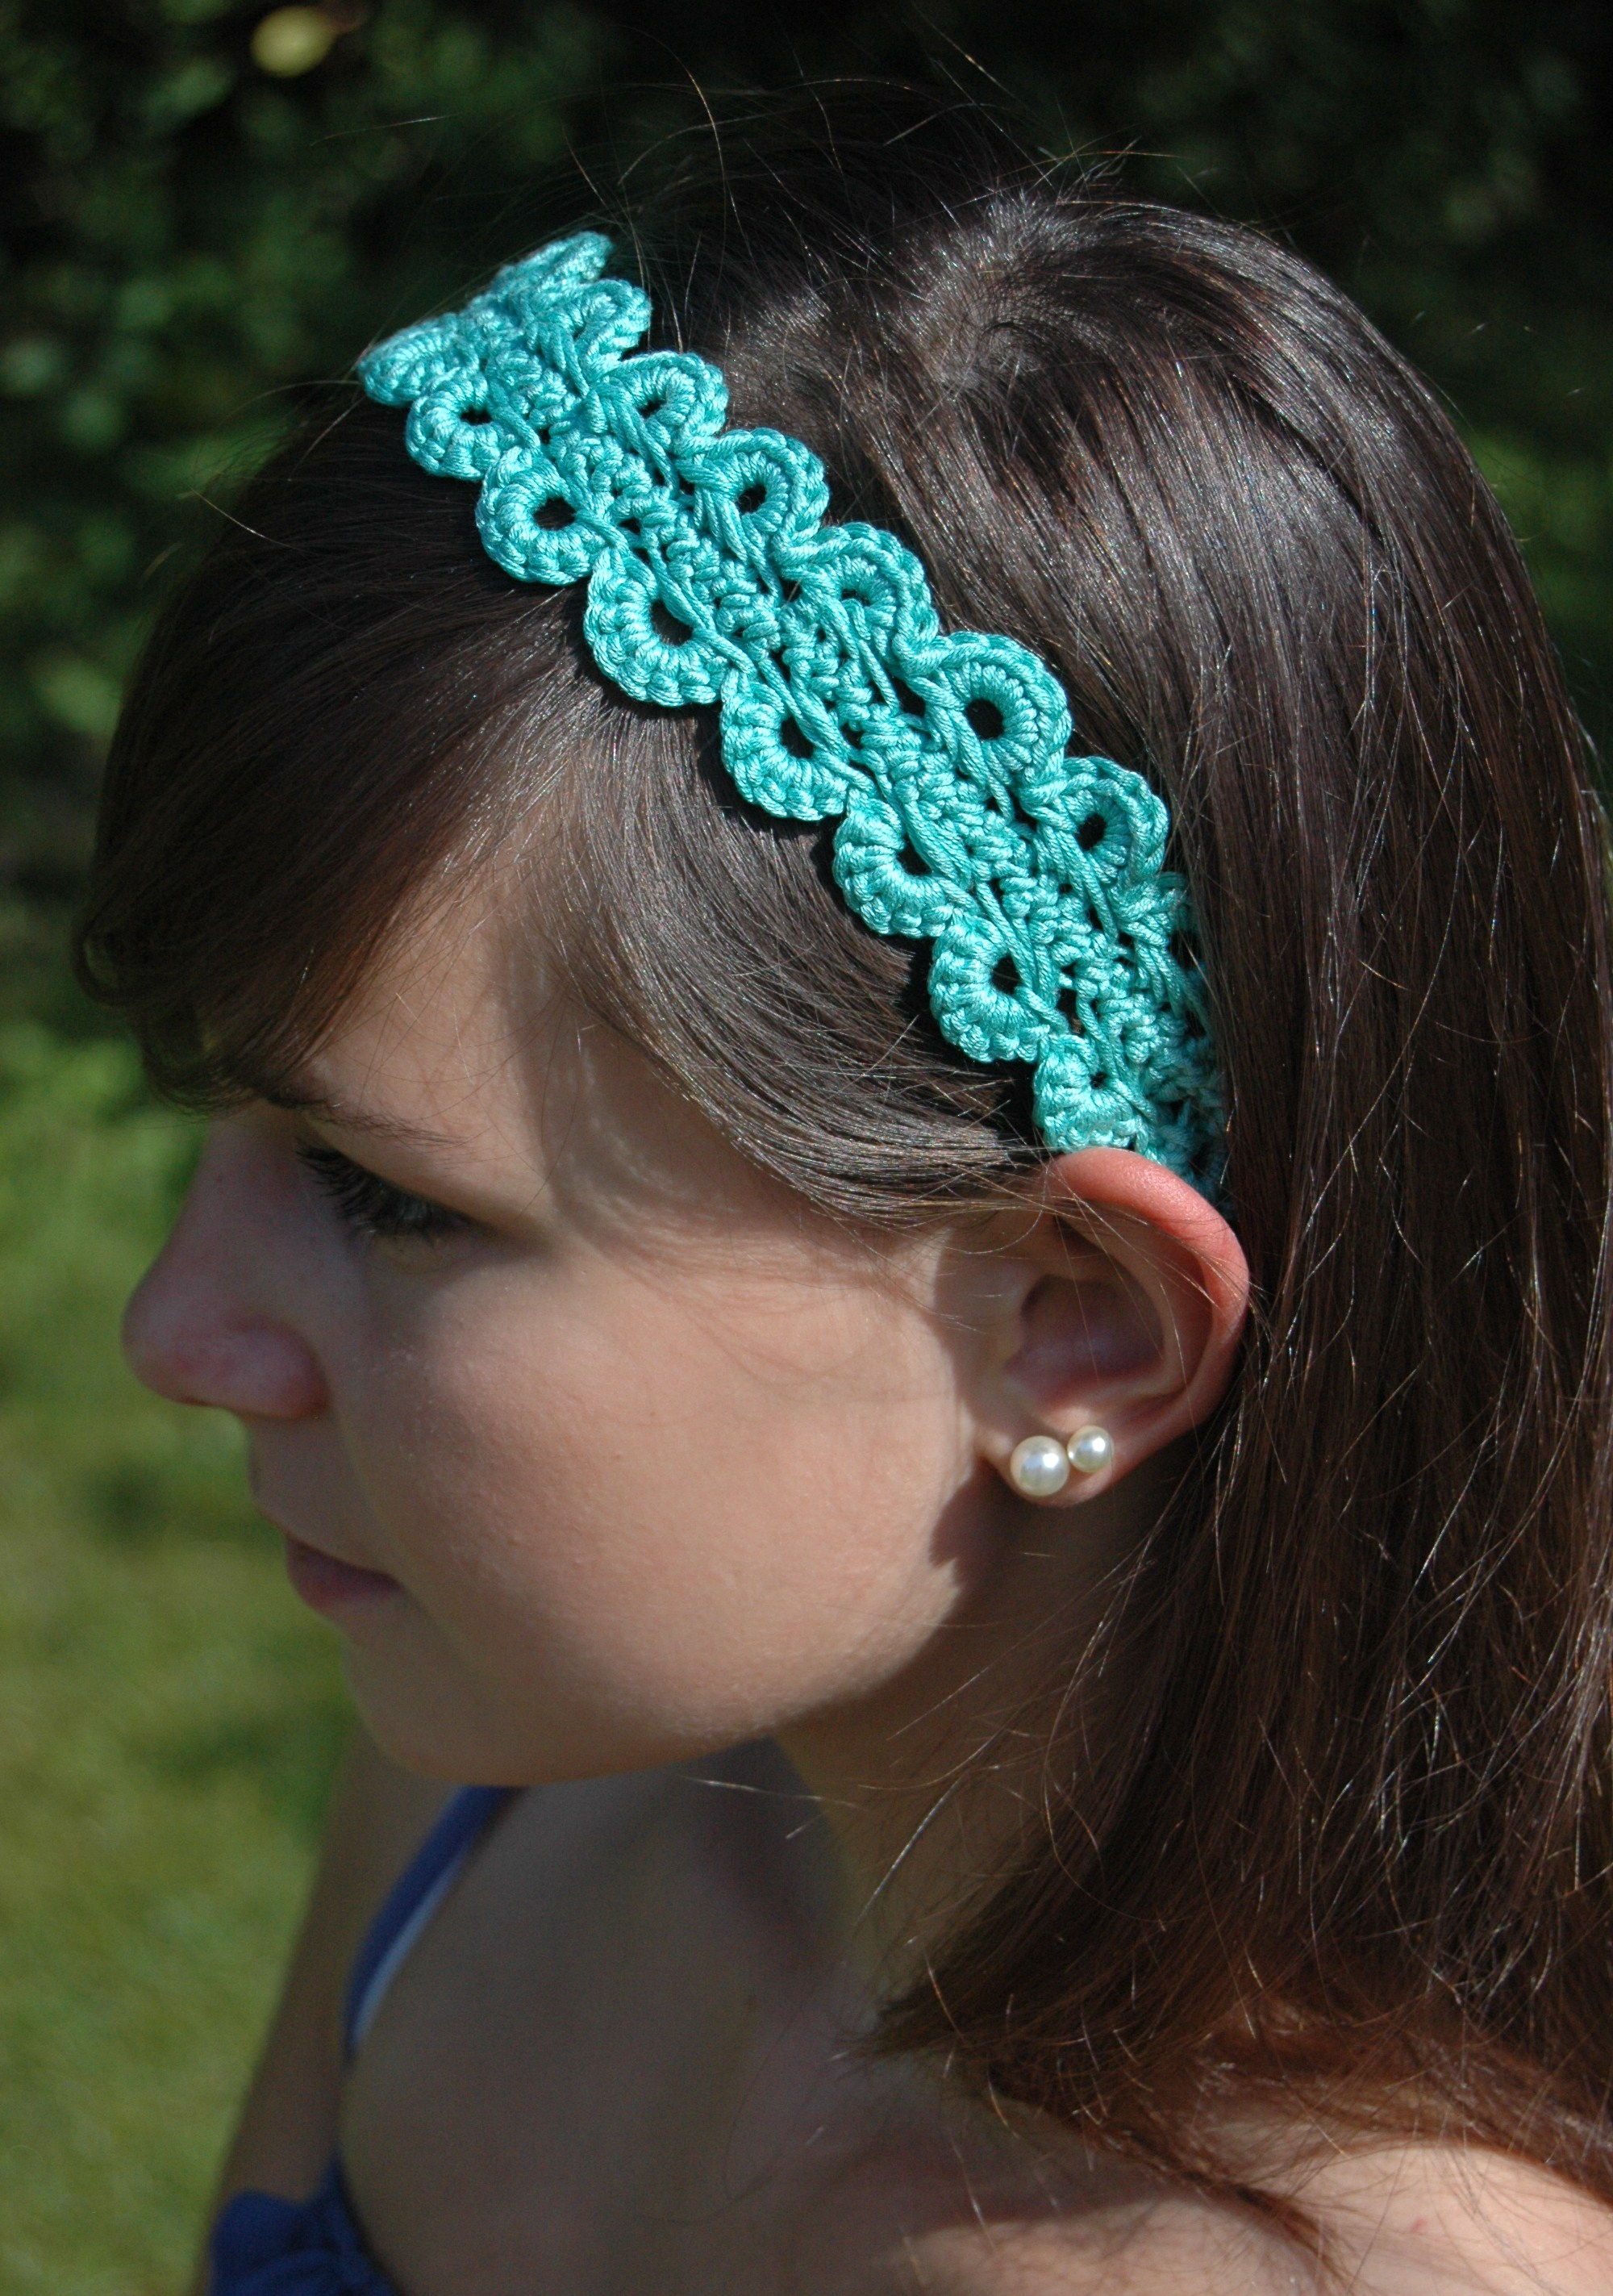 CROCHETED HEADBAND PATTERN FREE PATTERNS